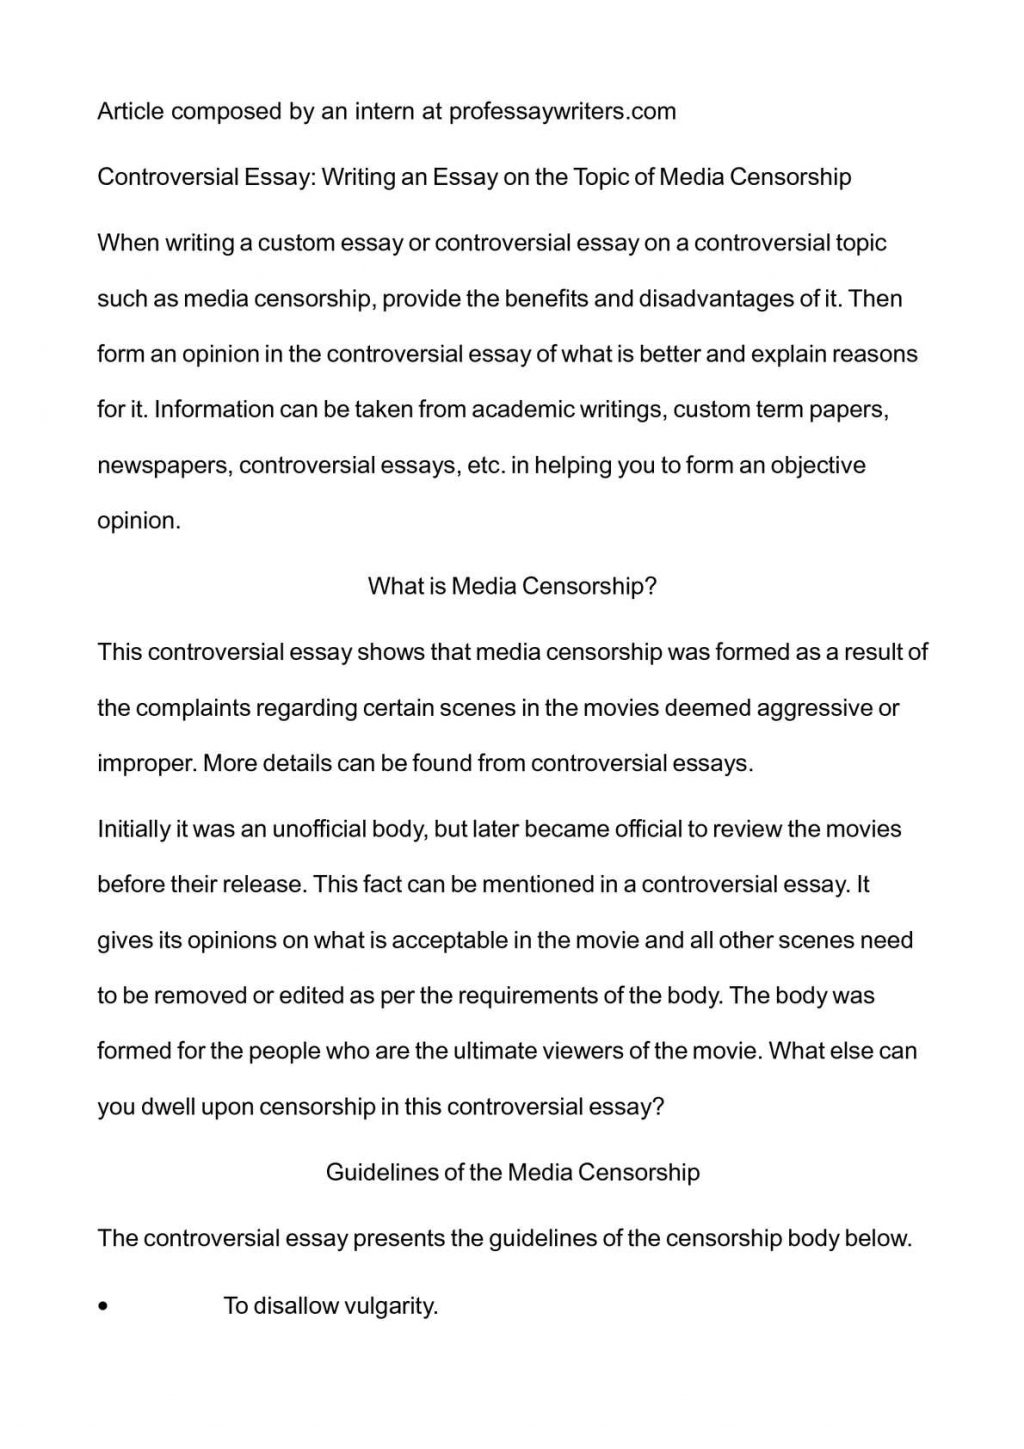 012 Research Paper Controversial Essay On Immigration Topics Essays Thomas Sowell Pdf20 1024x1449 Best Issues Full